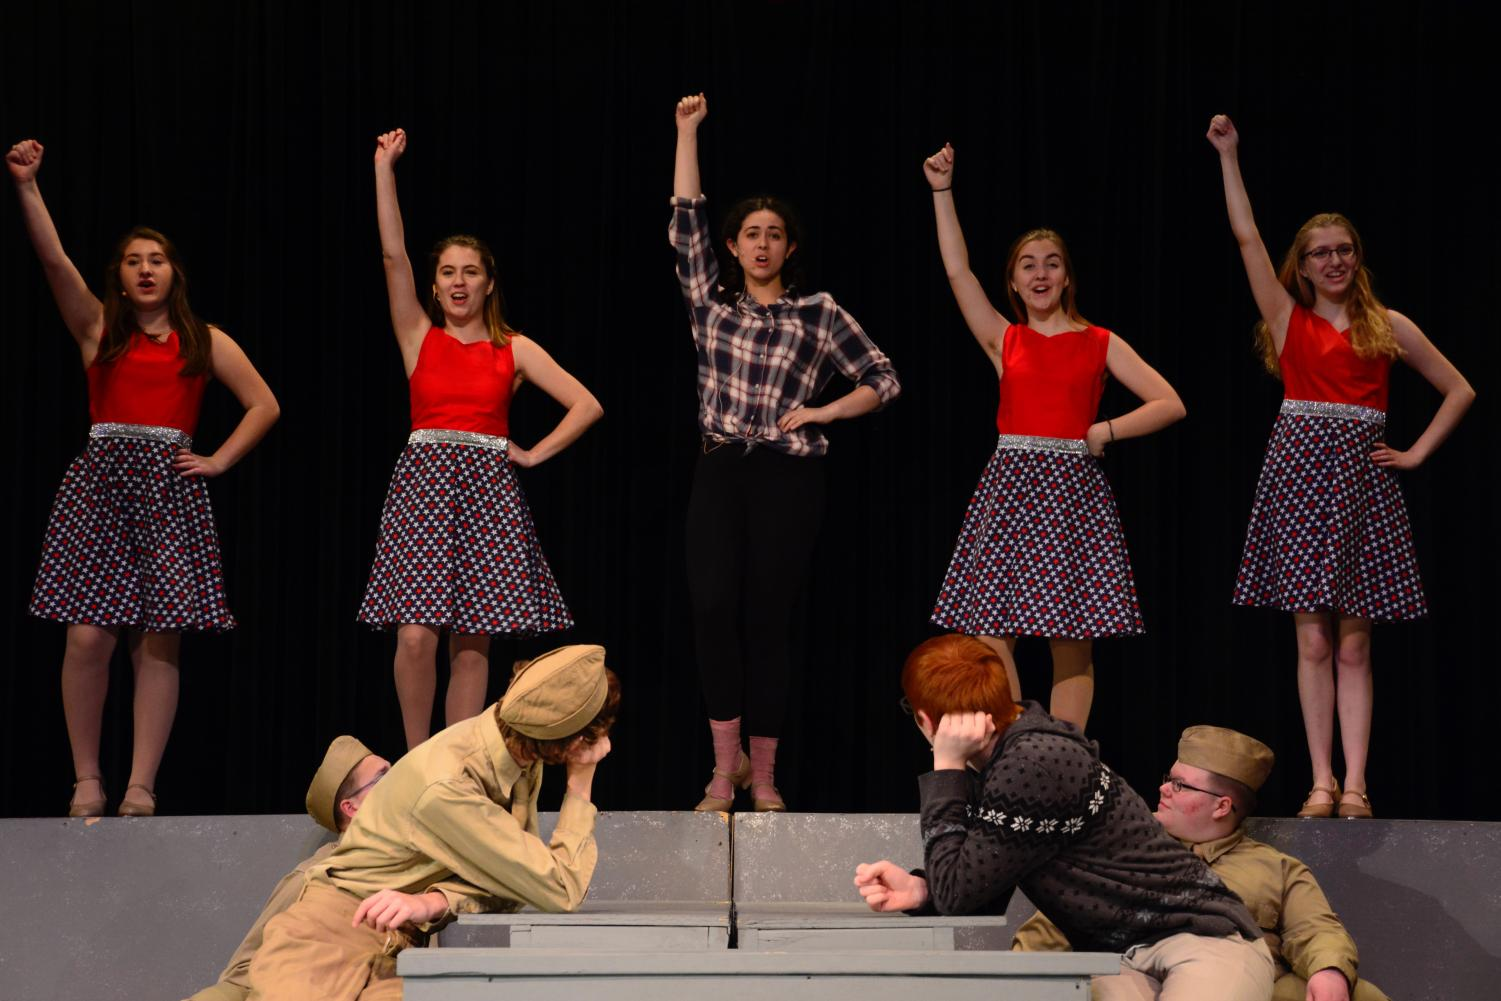 Cast members perform the song 'Red, White and True' from the musical 'Big Fish.'